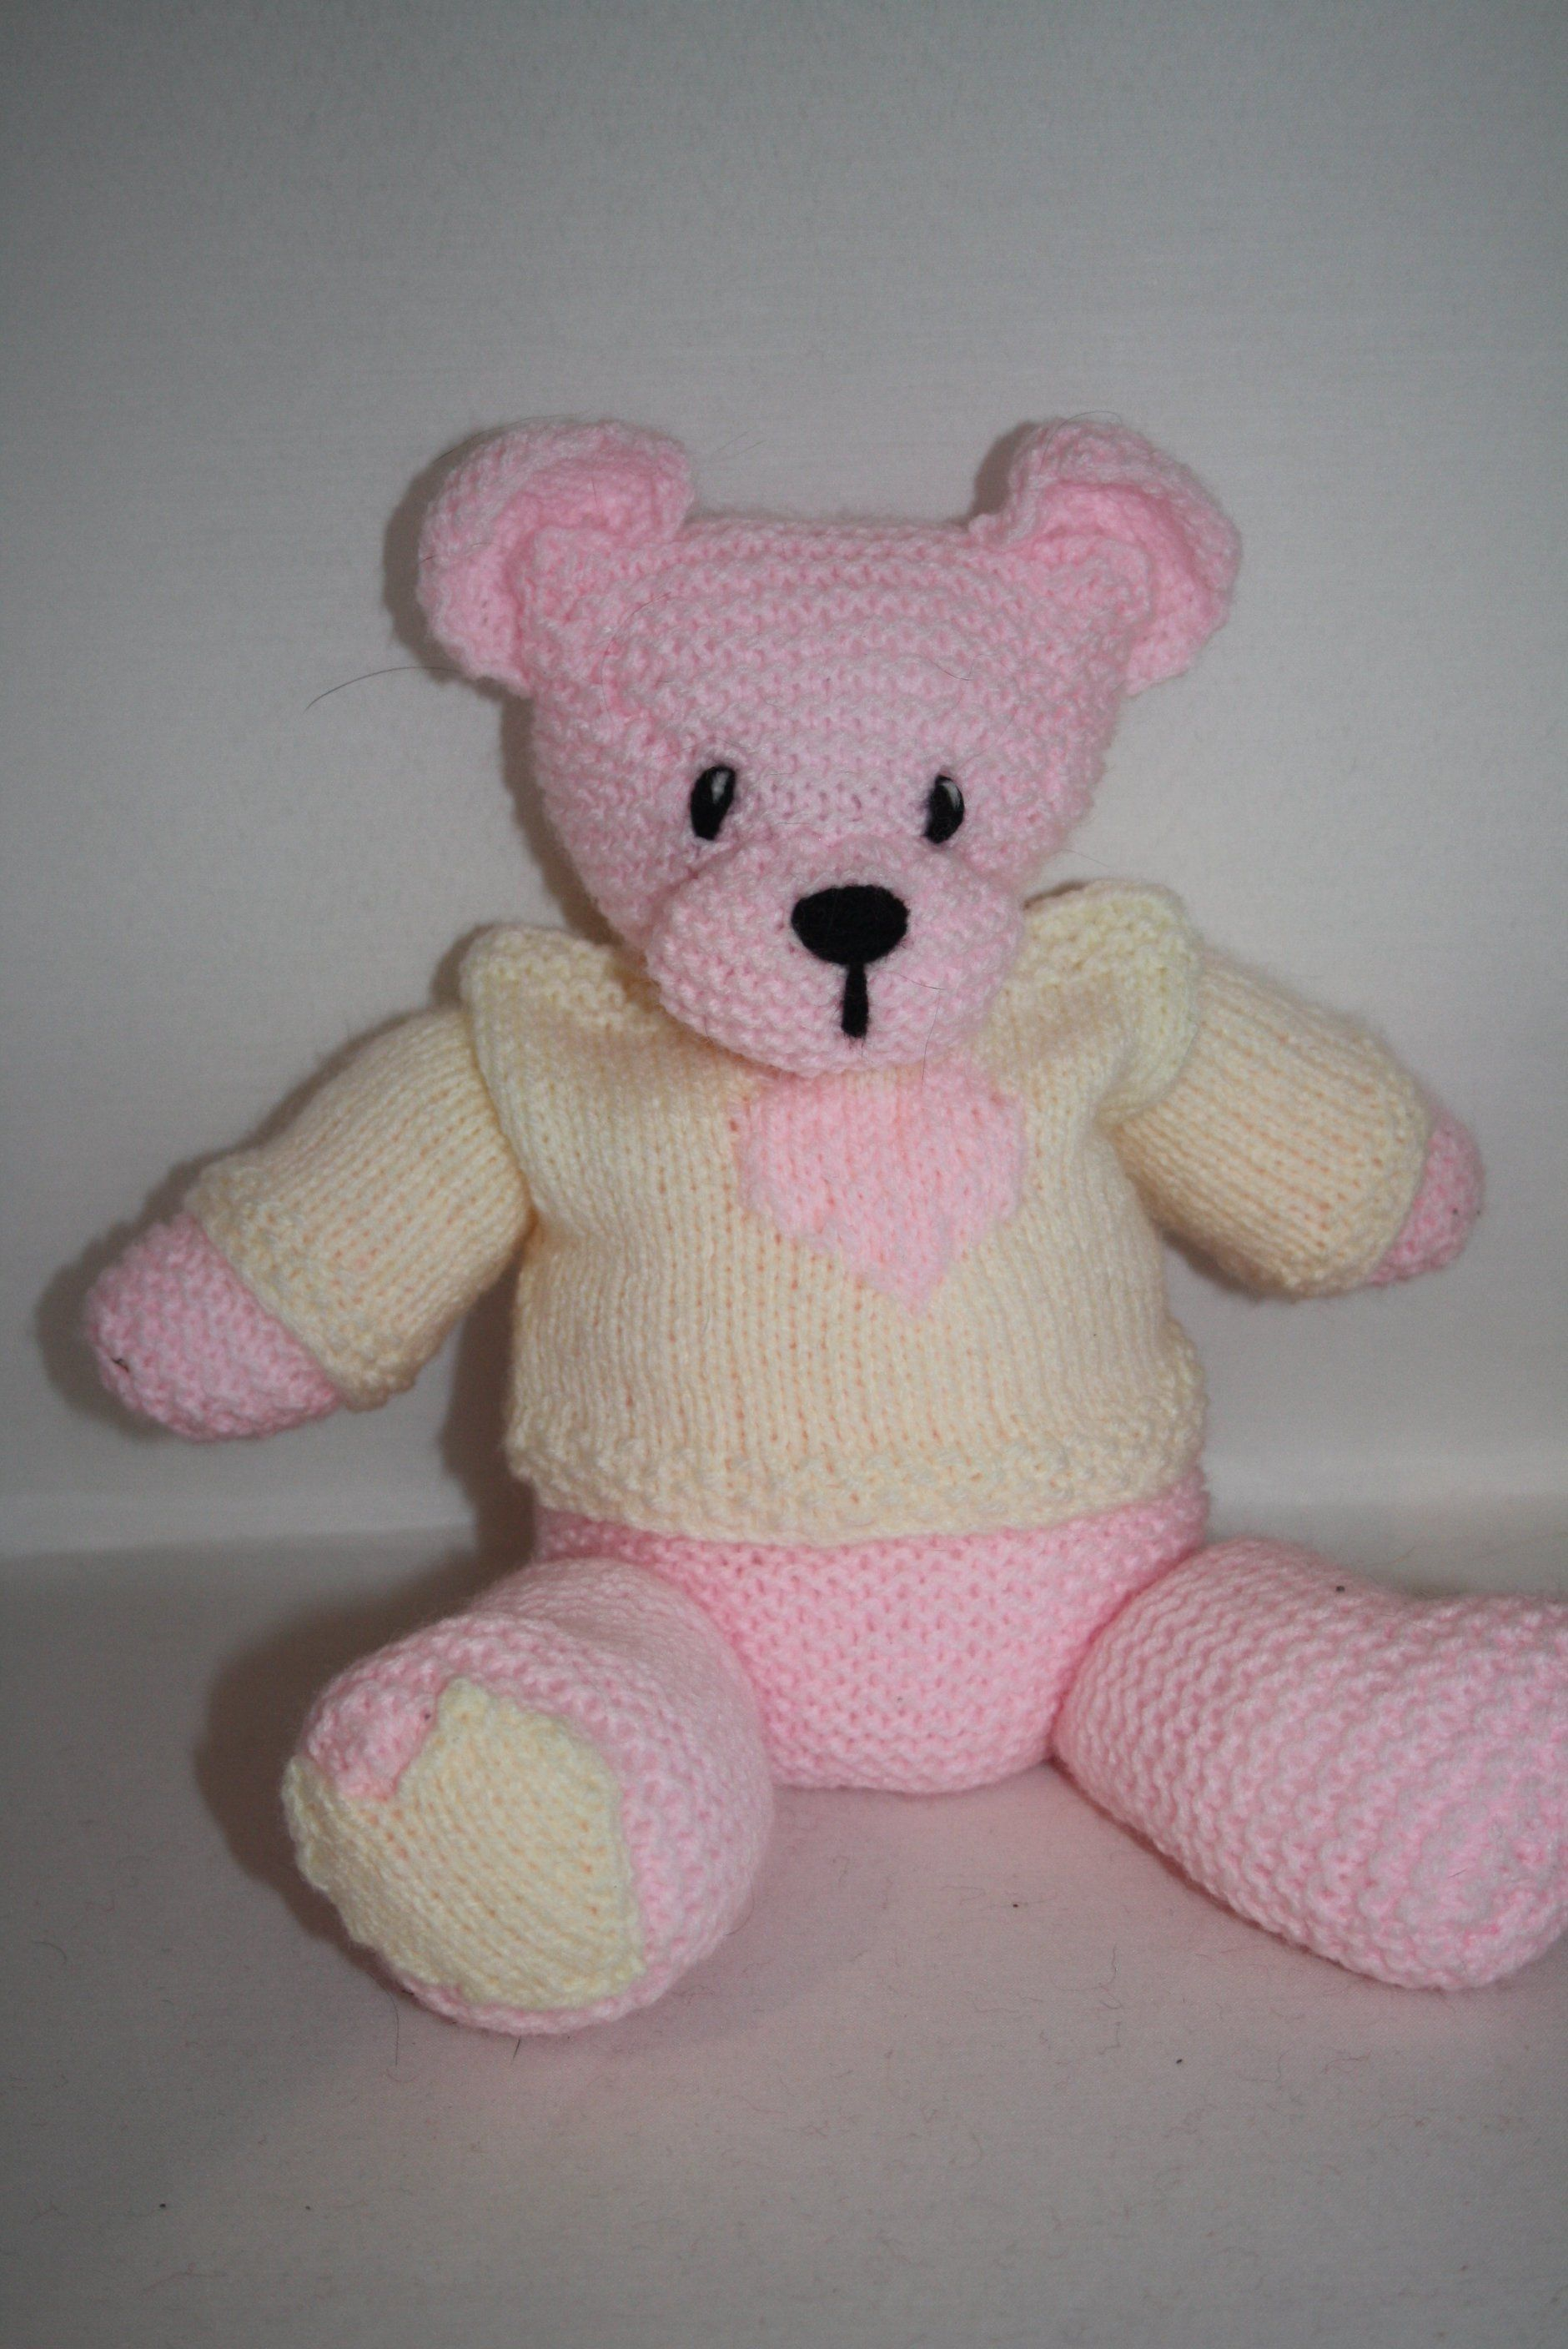 recycled bear unique kids gift child gift handmade teddy sweater bear baby gift Stuffed Bear stuffed bear handmade bear baby gift